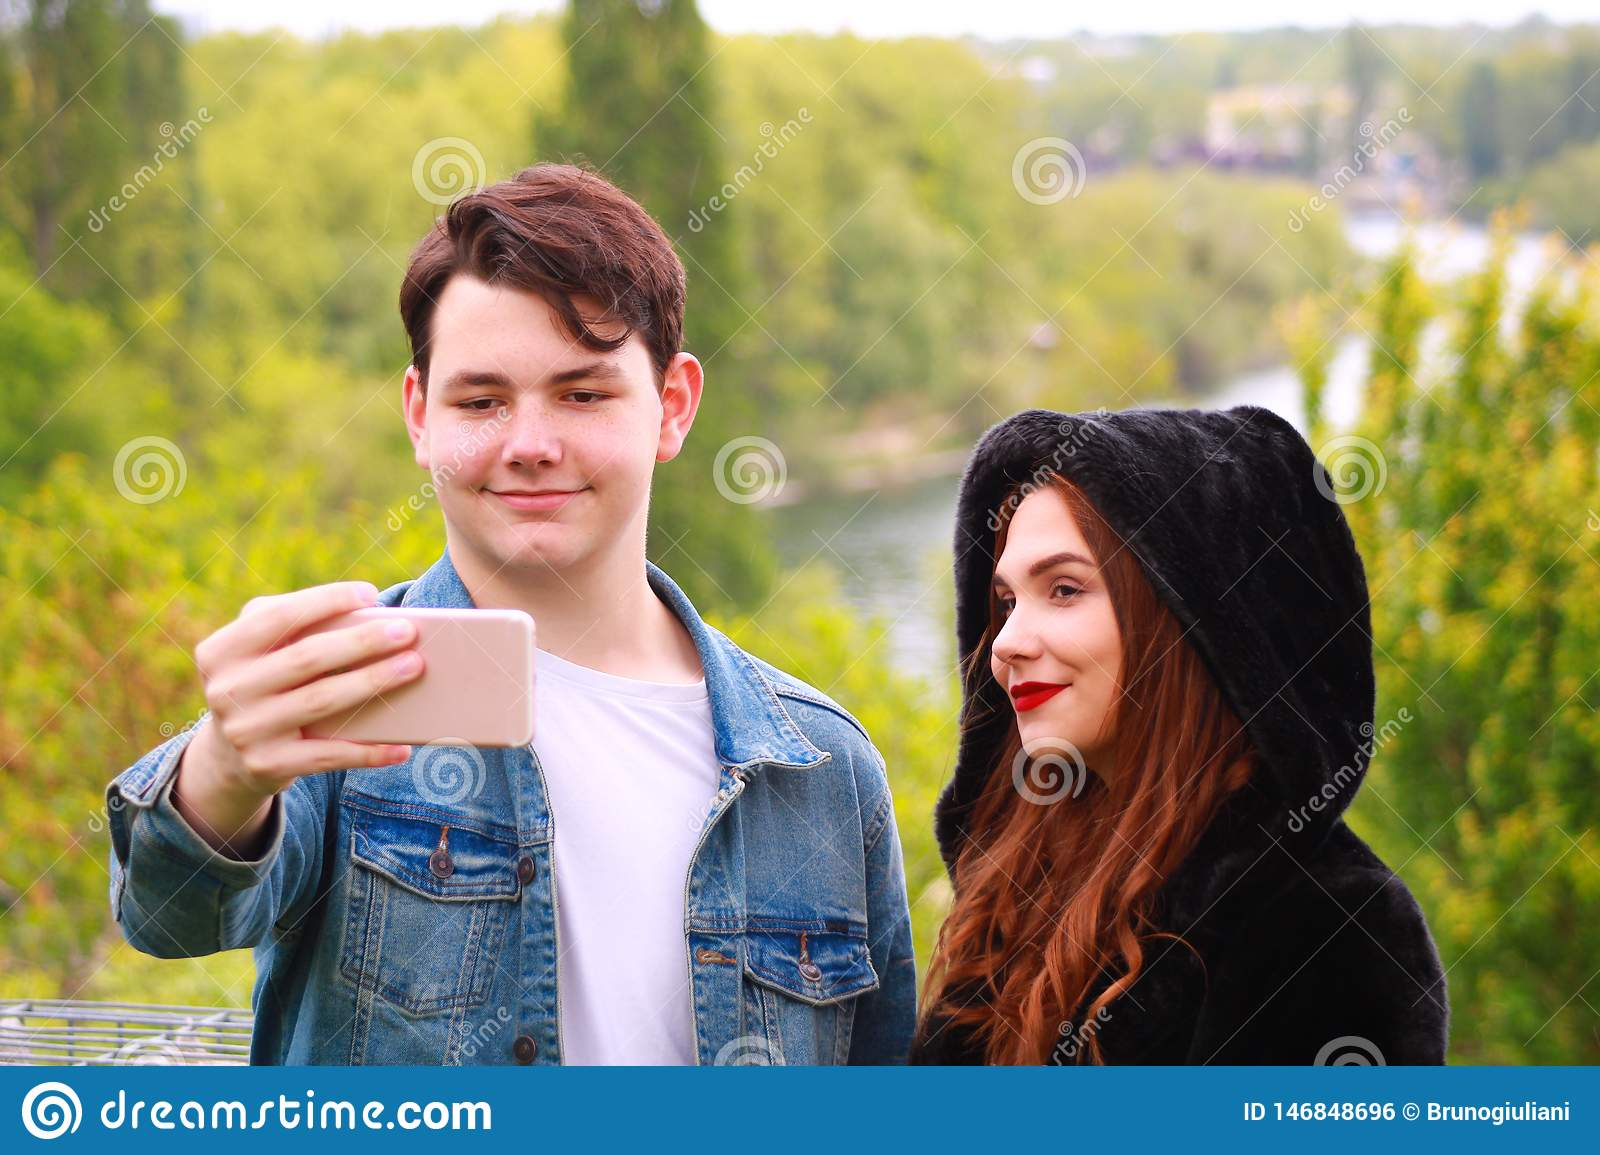 A smiling boy and girl make a selfie in nature. Woman with long red hair